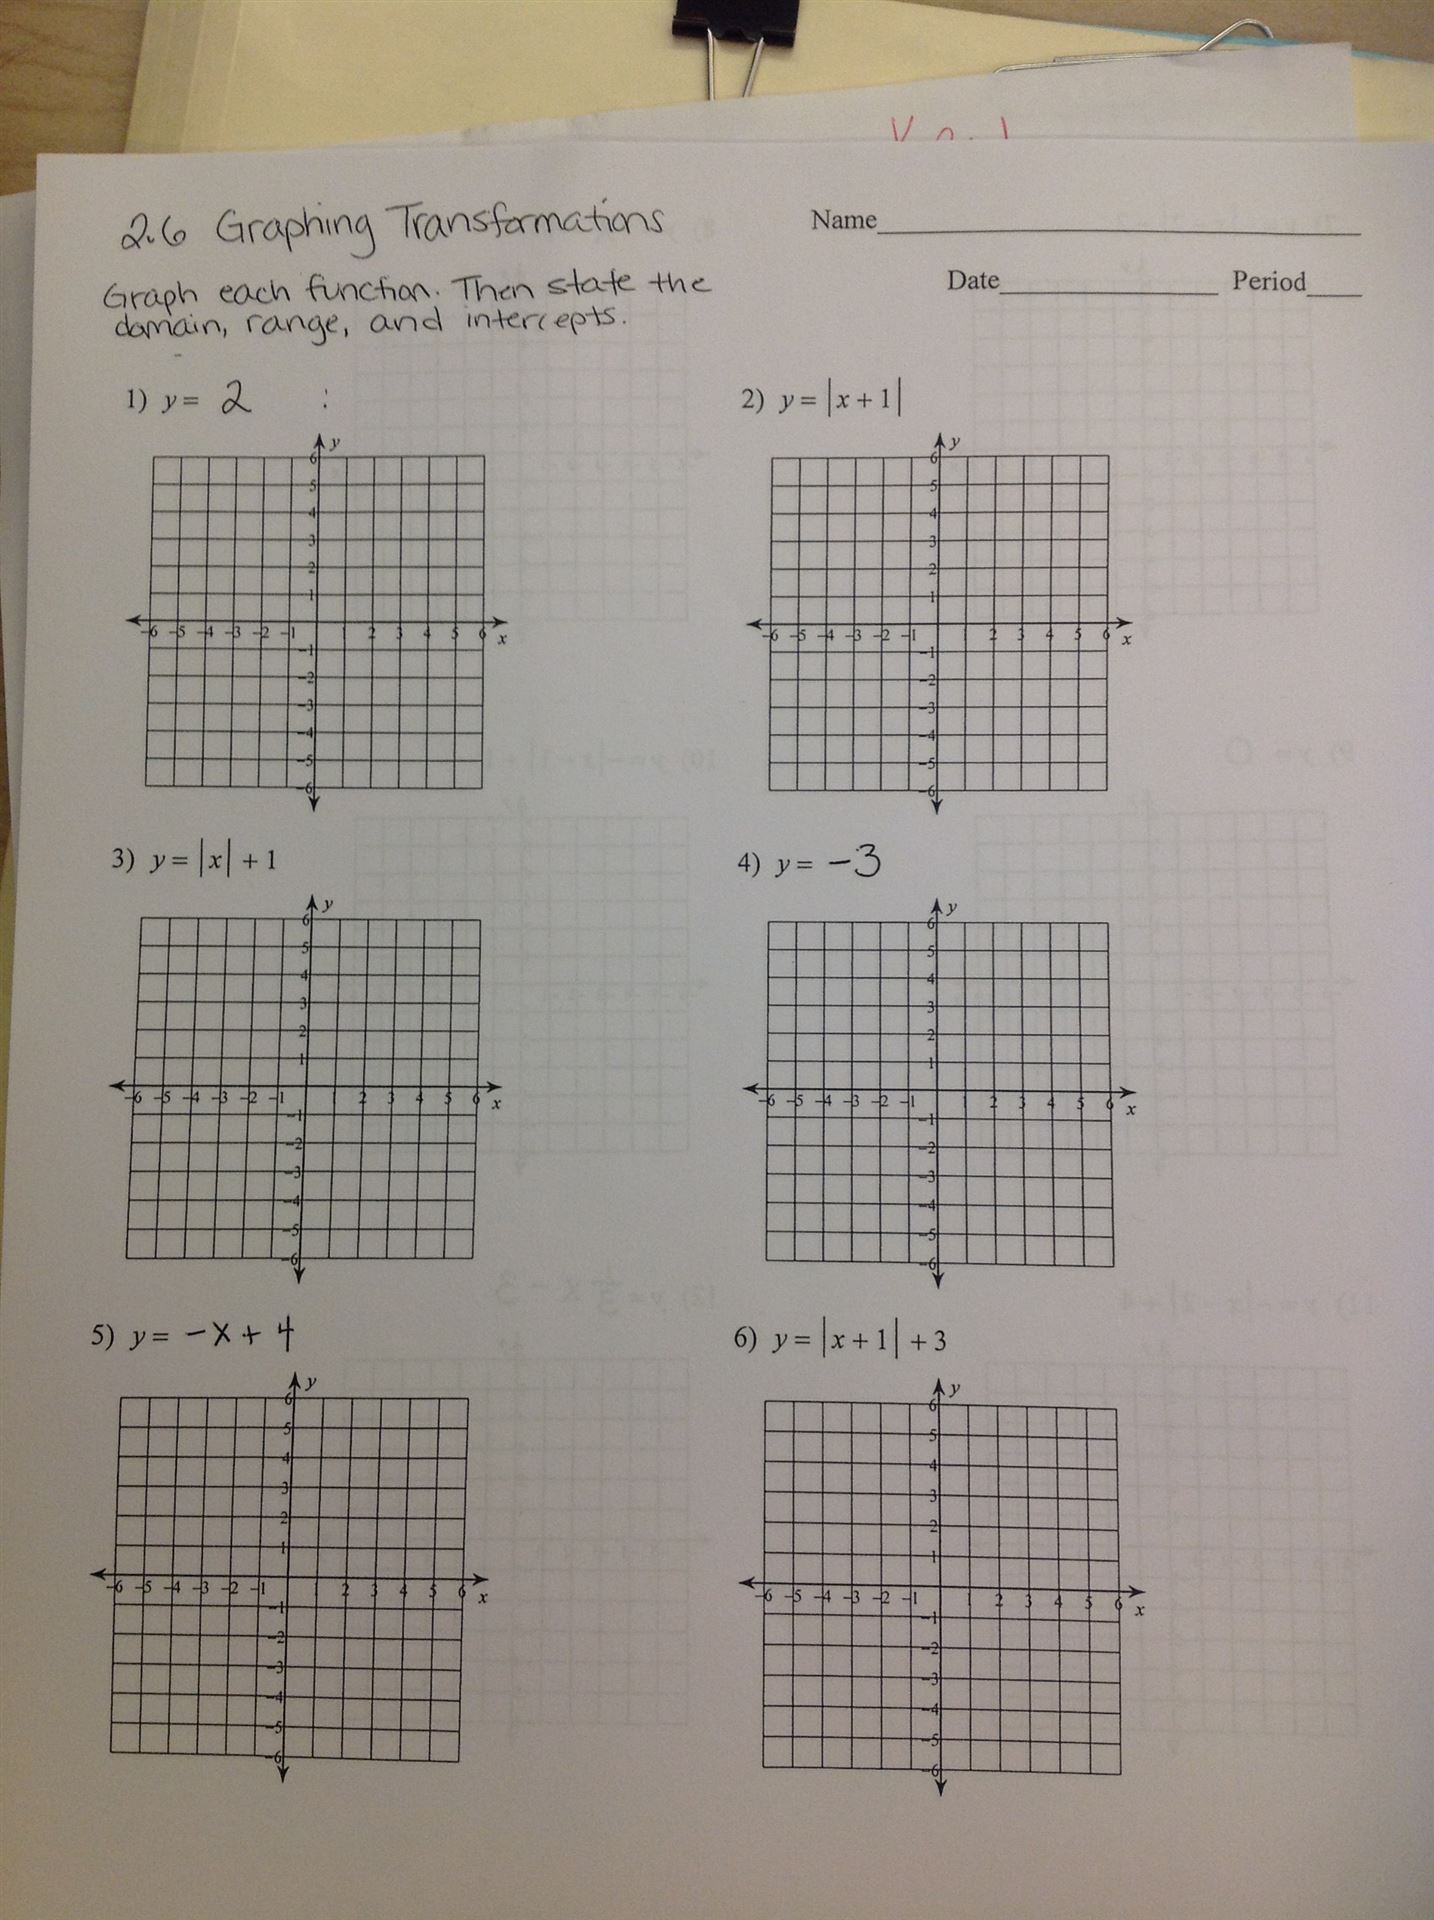 Lyndhurst School District – Graphing Transformations Worksheet